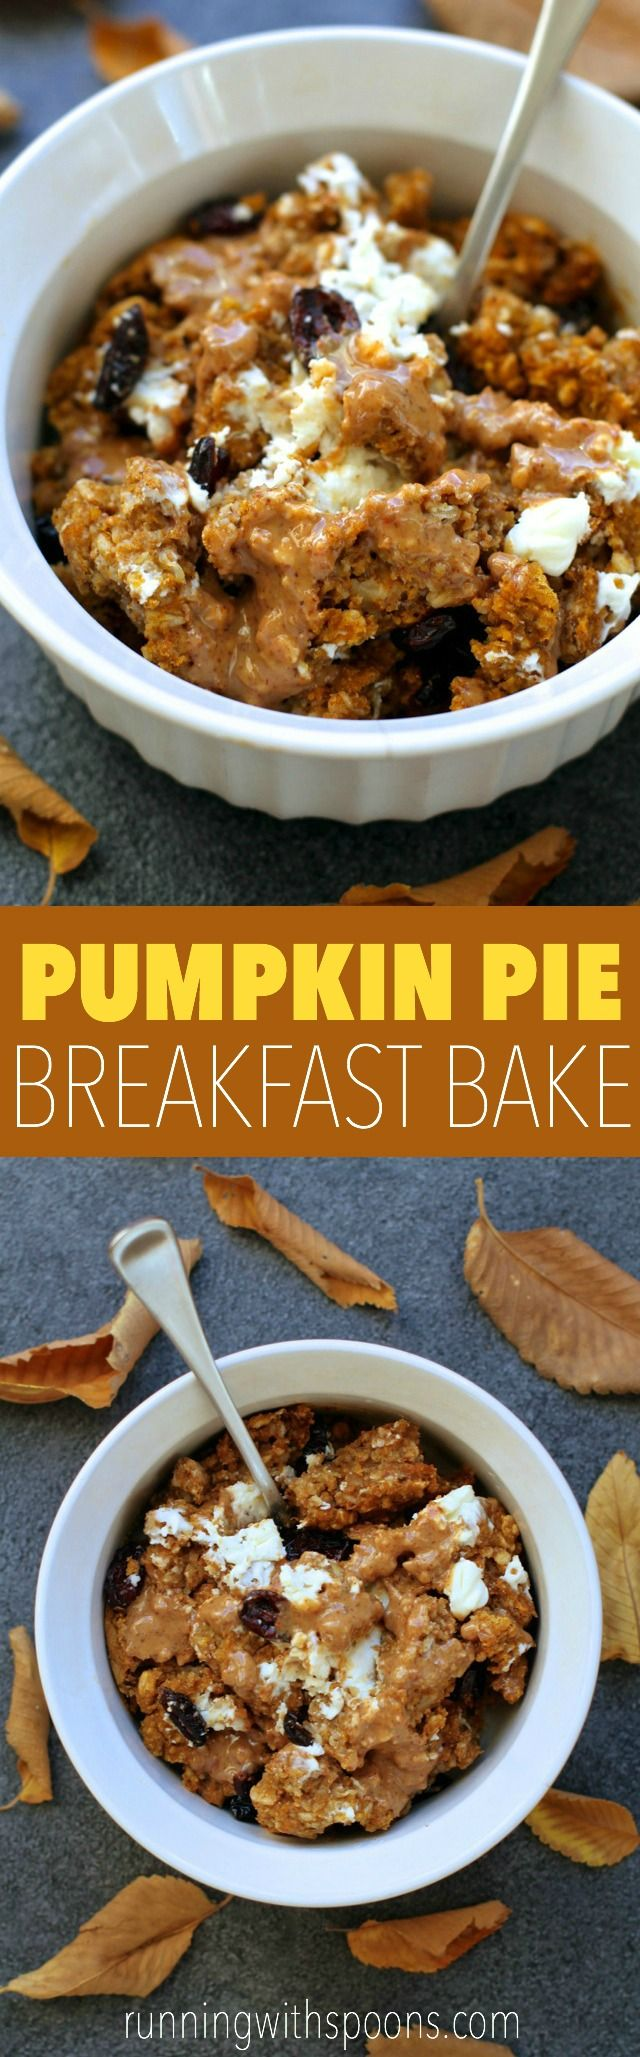 Pumpkin Pie Breakfast Bake -- soft, doughy, and loaded with pumpkin flavour! || runningwithspoons.com #pumpkin #oatmeal #breakfast